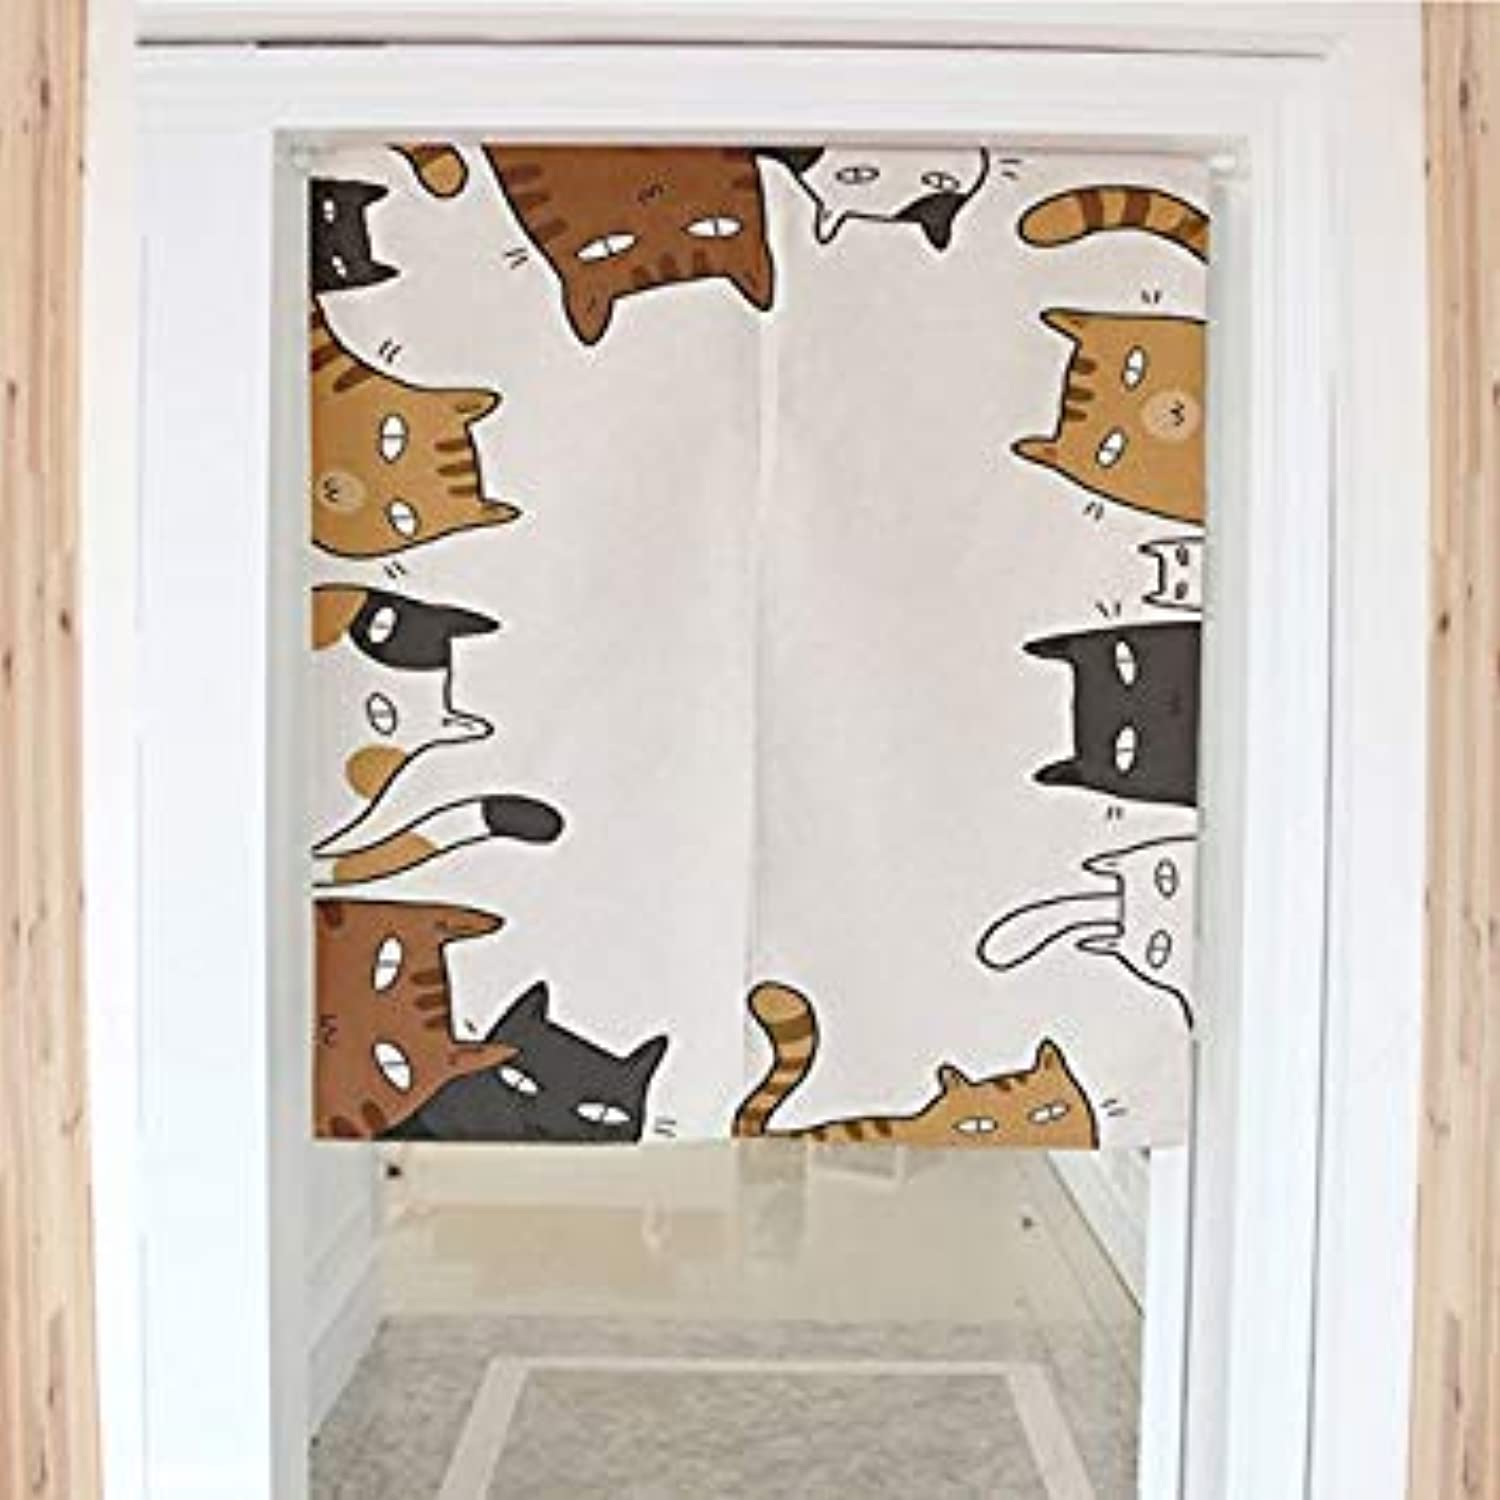 1Pc Style Funny Cats Dimidiate Door Curtain Cotton Linen Household Partition Bedroom Kitchen Door Curtain 80X90Cm